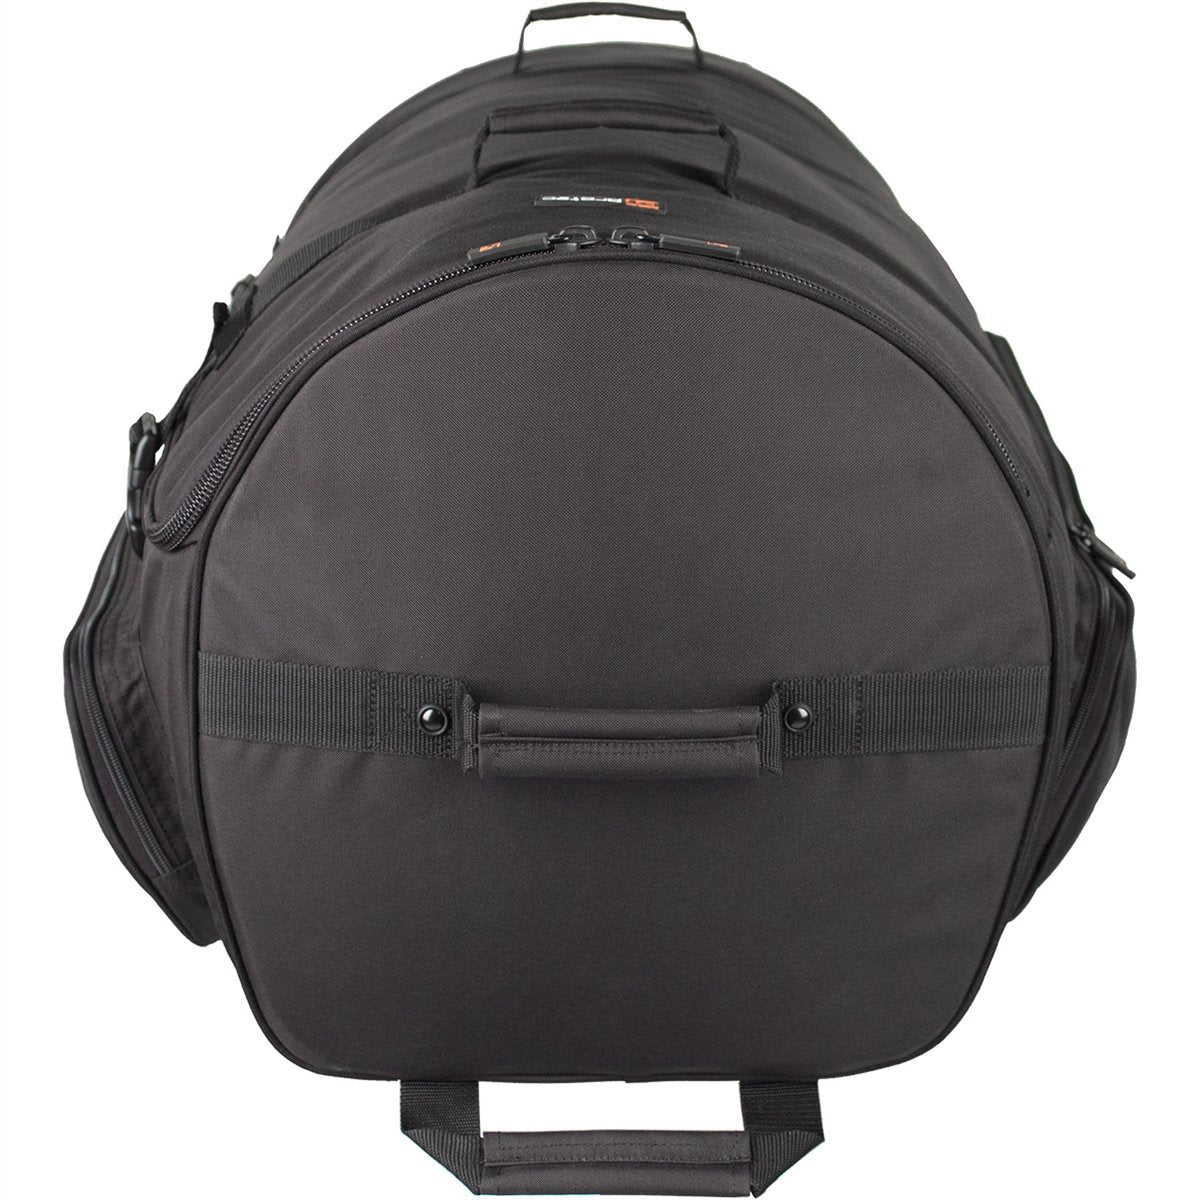 Protec - Multi-Tom Bag with Wheels-Percussion-Protec-Music Elements